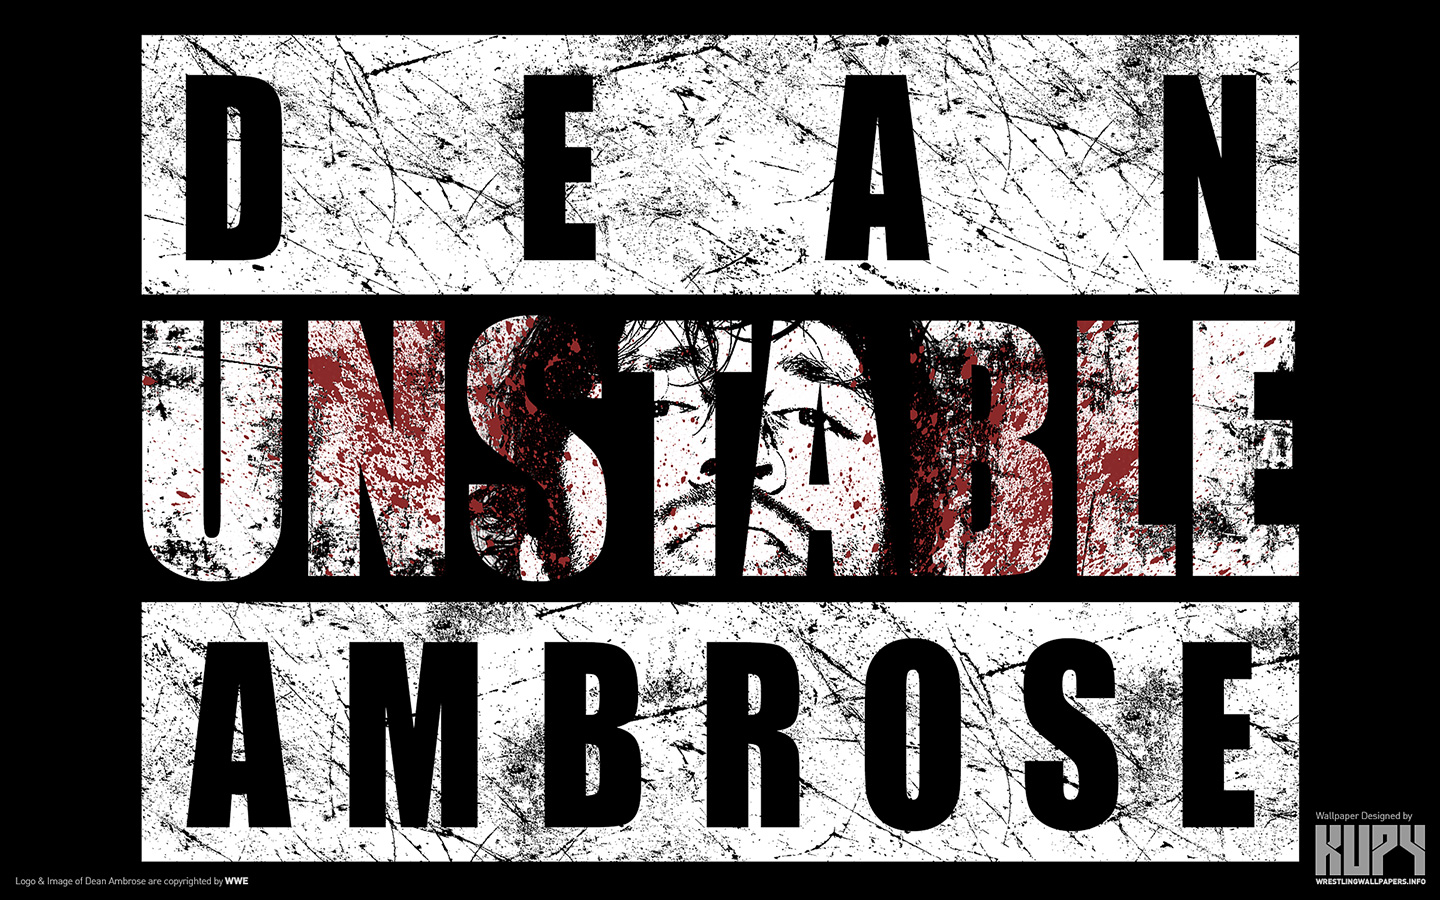 Dean Ambrose - Unstable - The Shield (WWE) Wallpaper